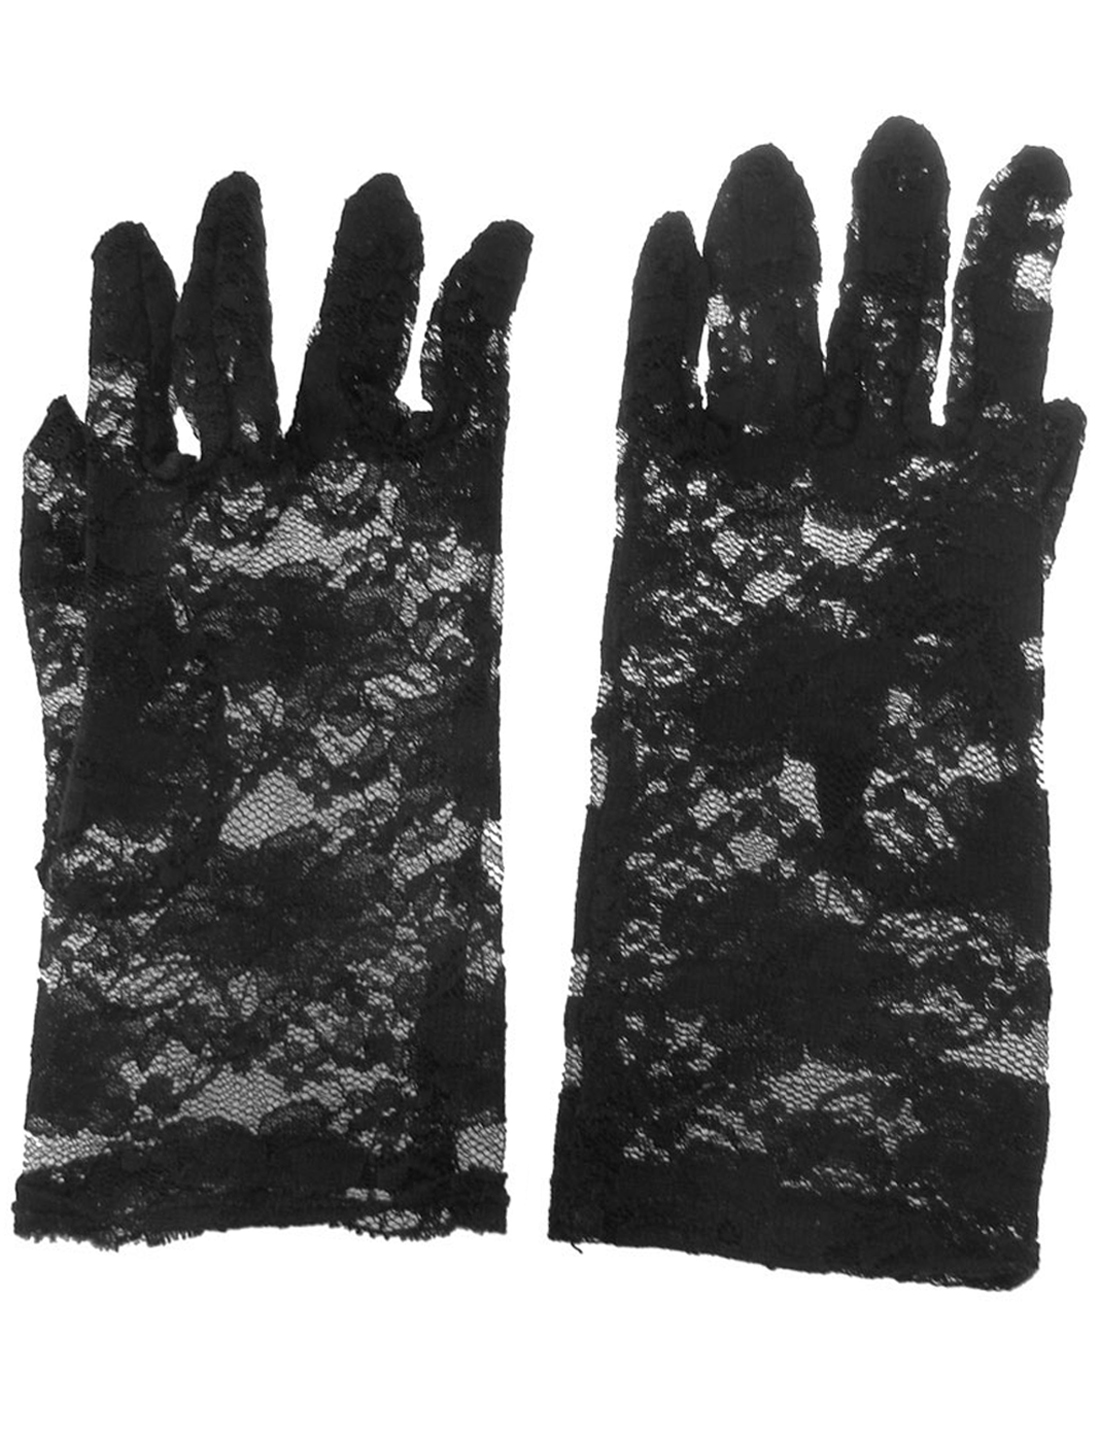 Lady Floral Lace Wrist Length Full Finger Gloves Pair Black